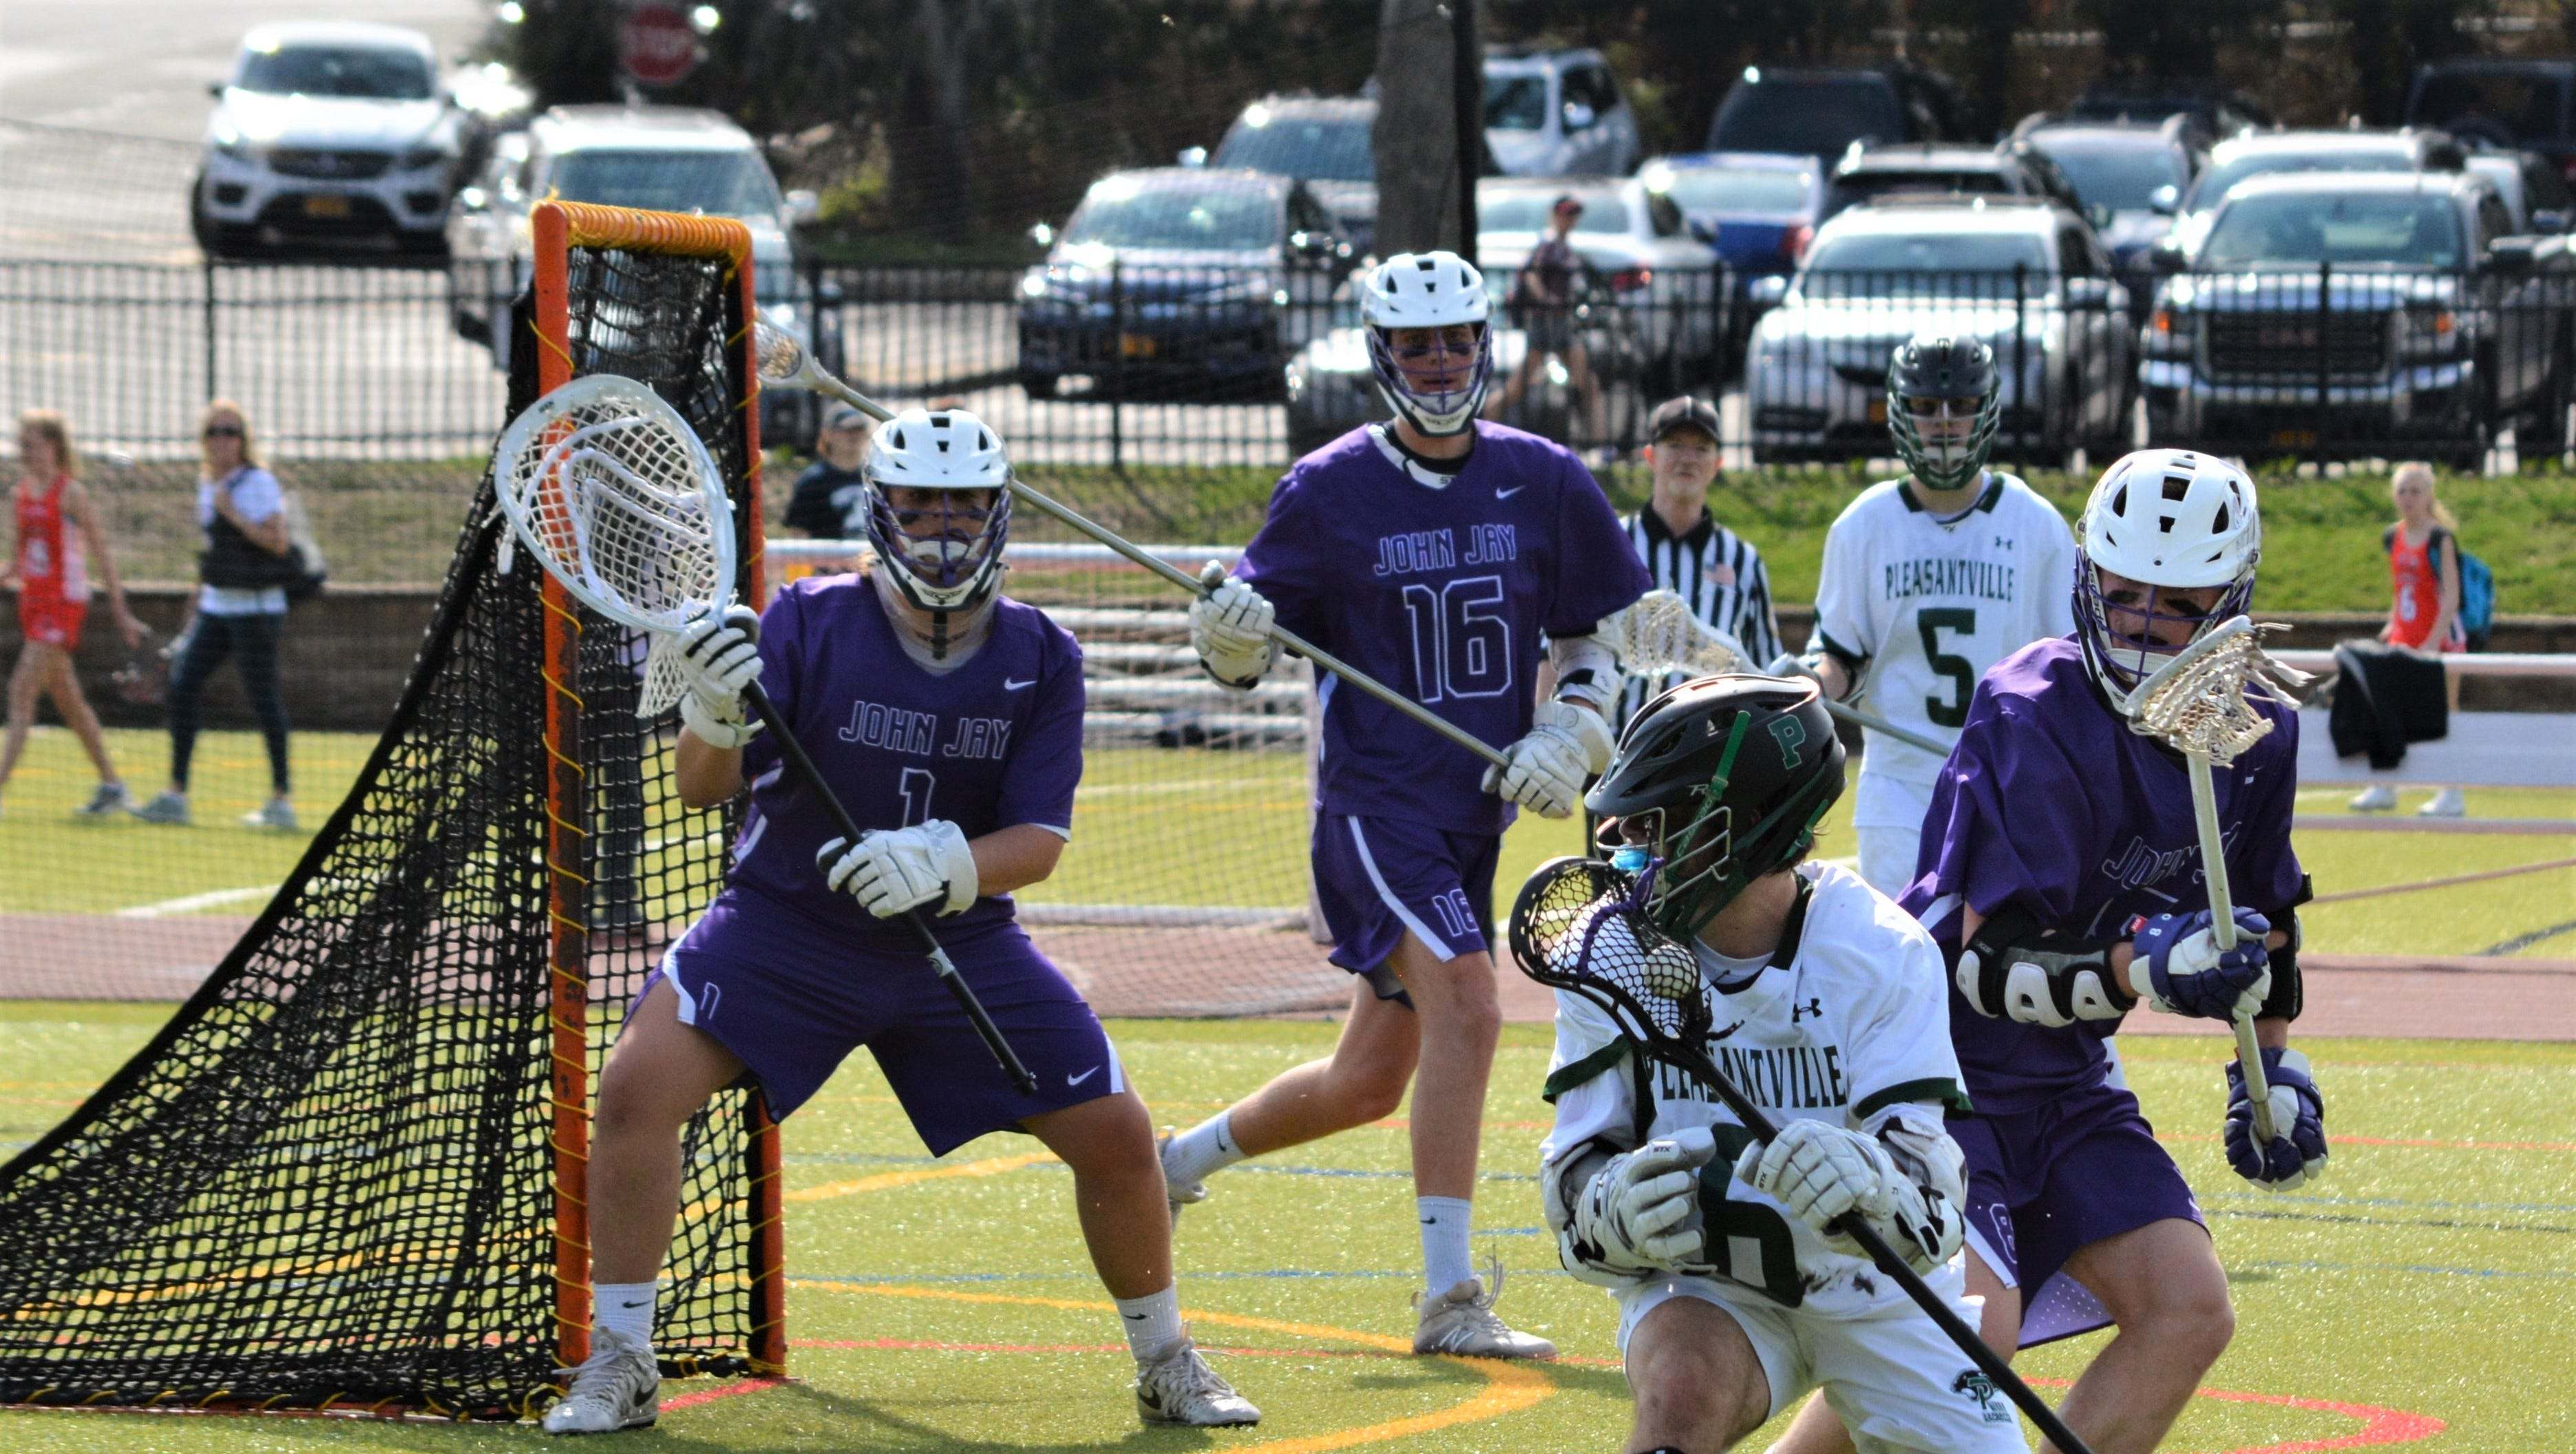 John Jay came back from an 8-6 deficit in the fourth quarter to post an 11-9 win over Pleasantville on Saturday, April 13, 2019.